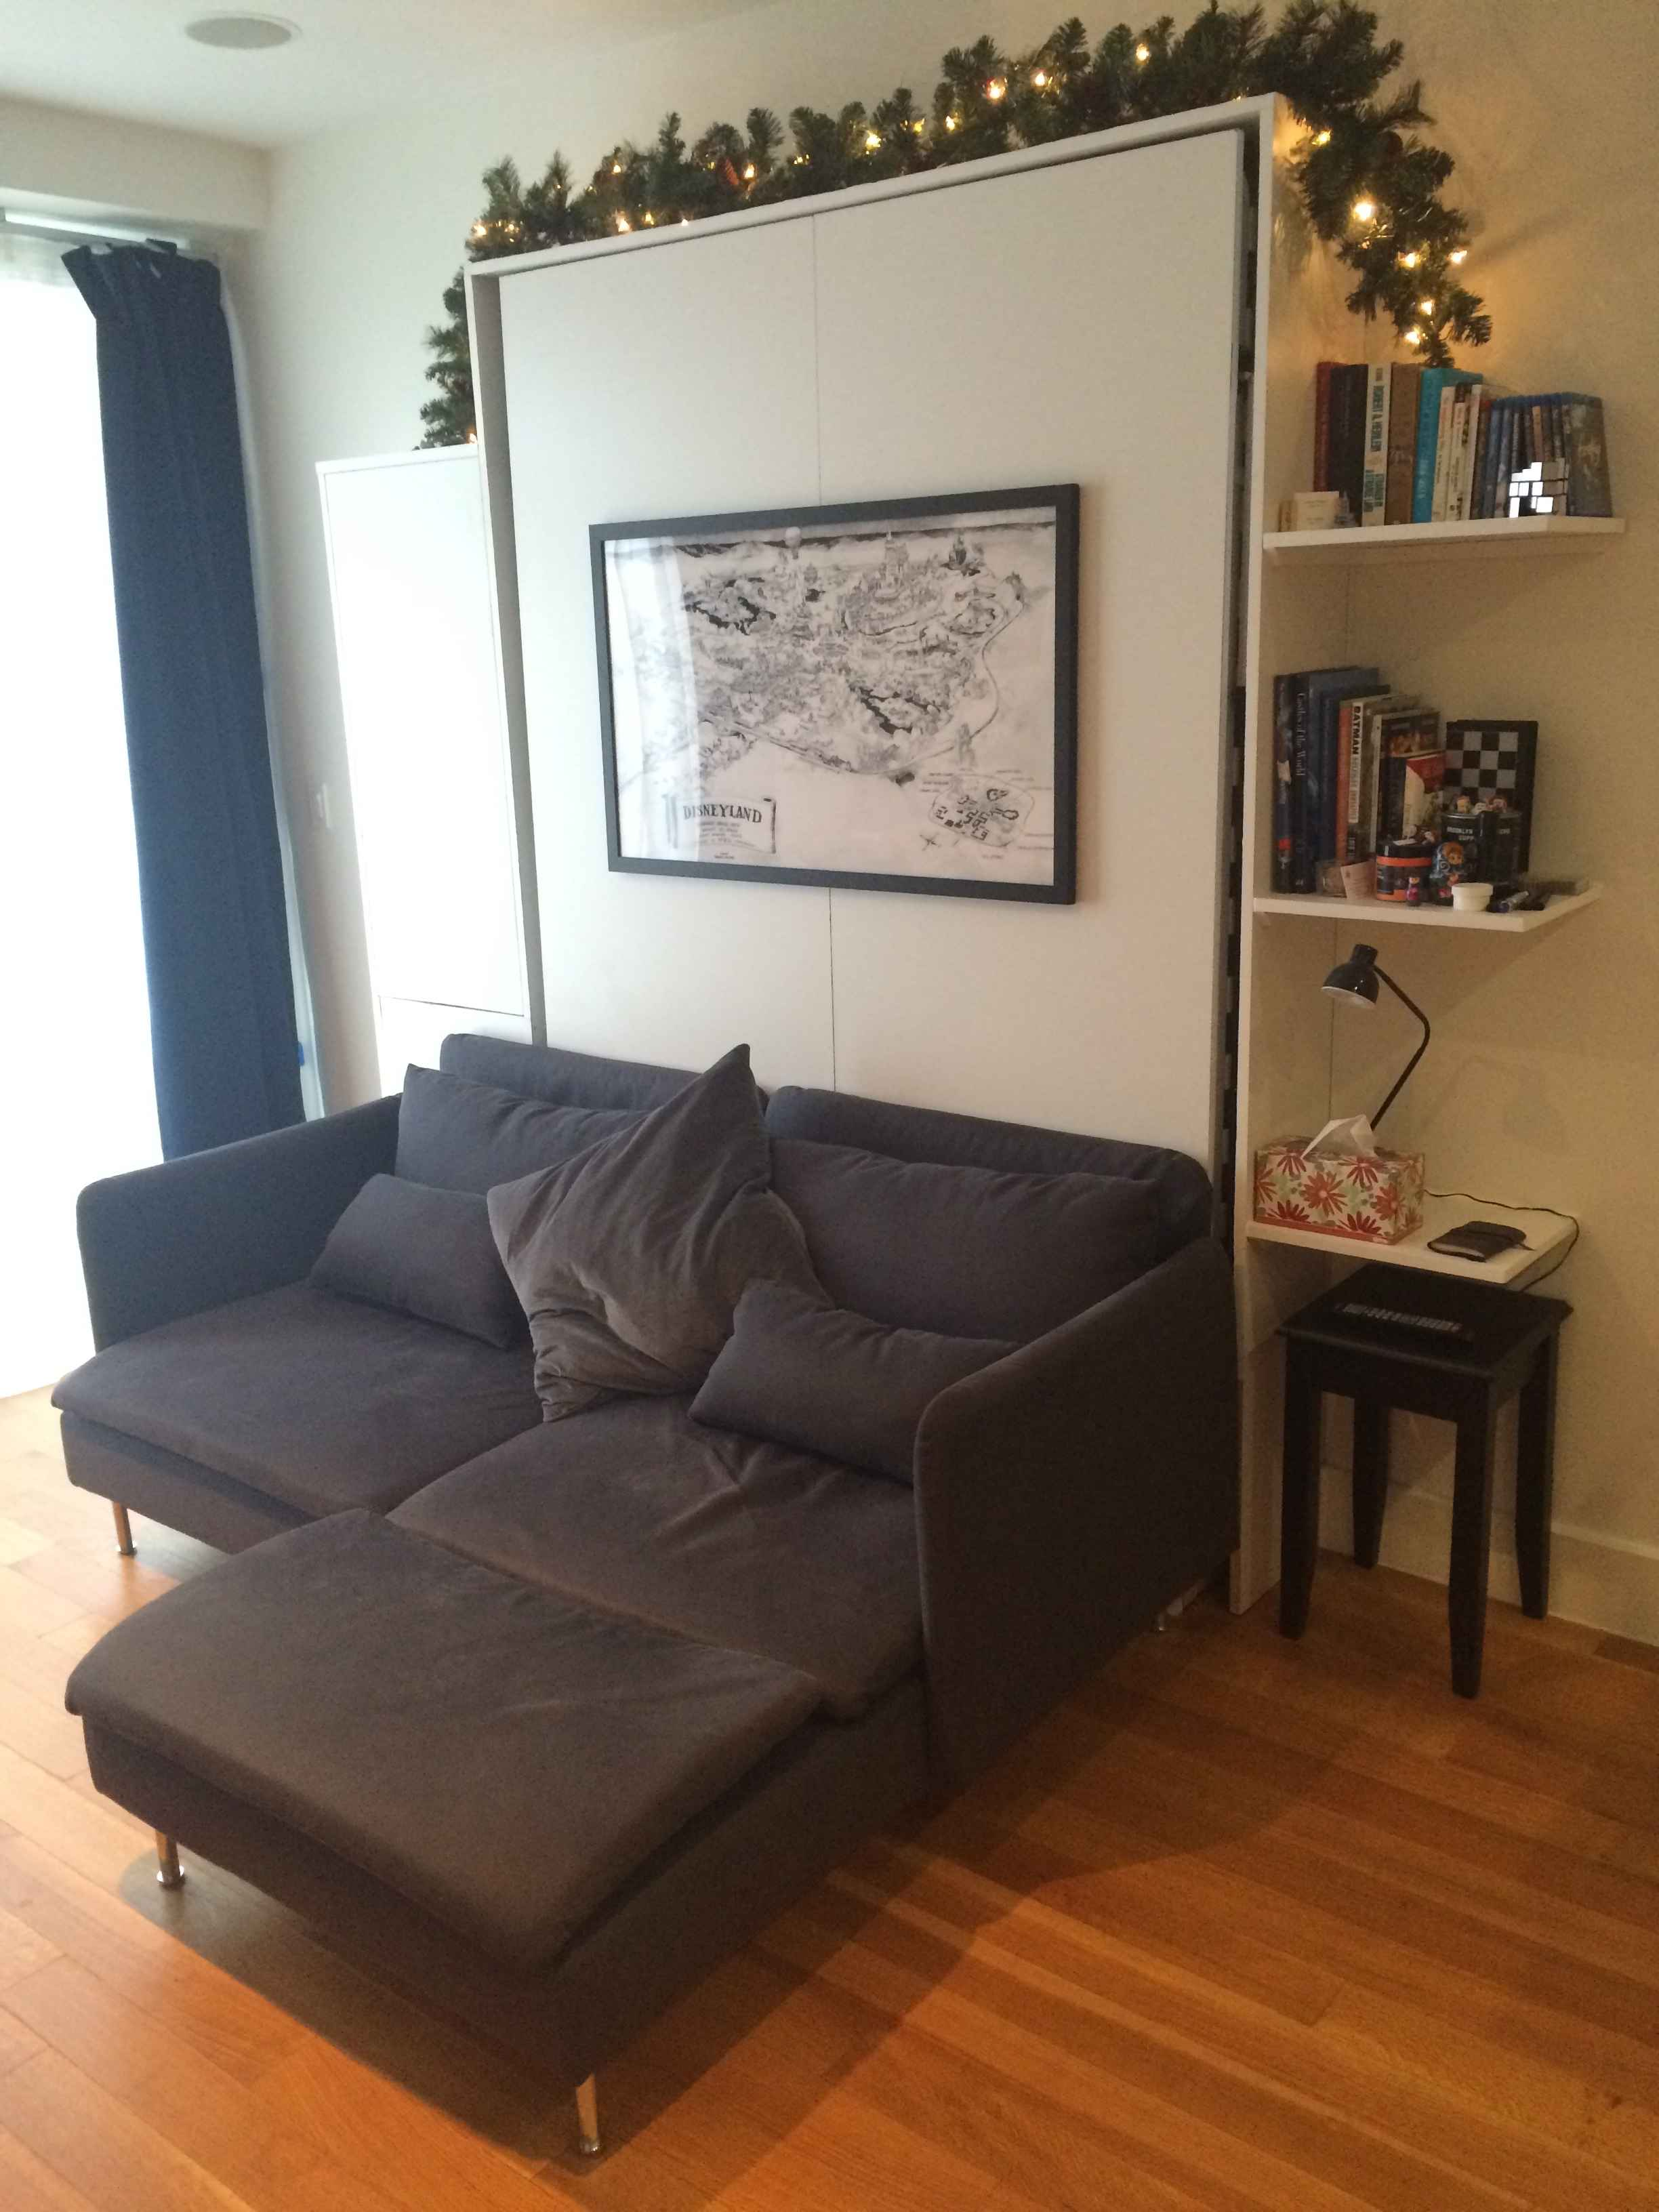 Completed Unit In Sofa Mode. Moving To A Much Nicer But Tiny Brooklyn  Apartment Meant